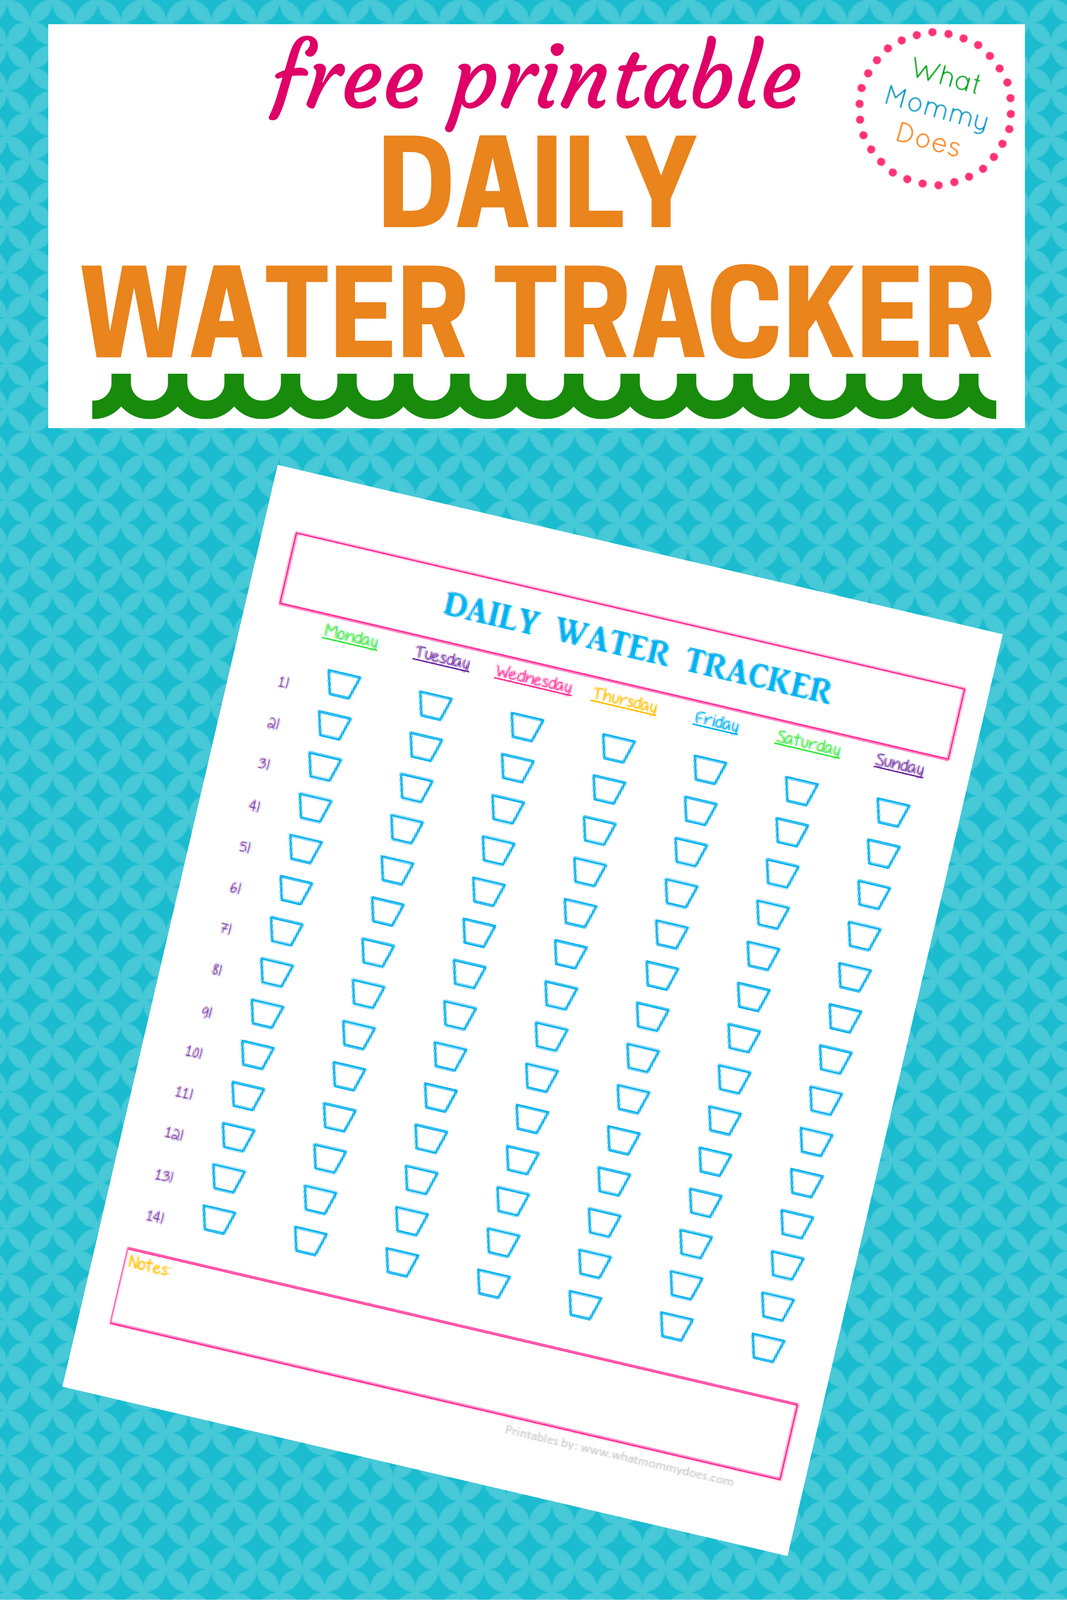 free daily water tracker printable